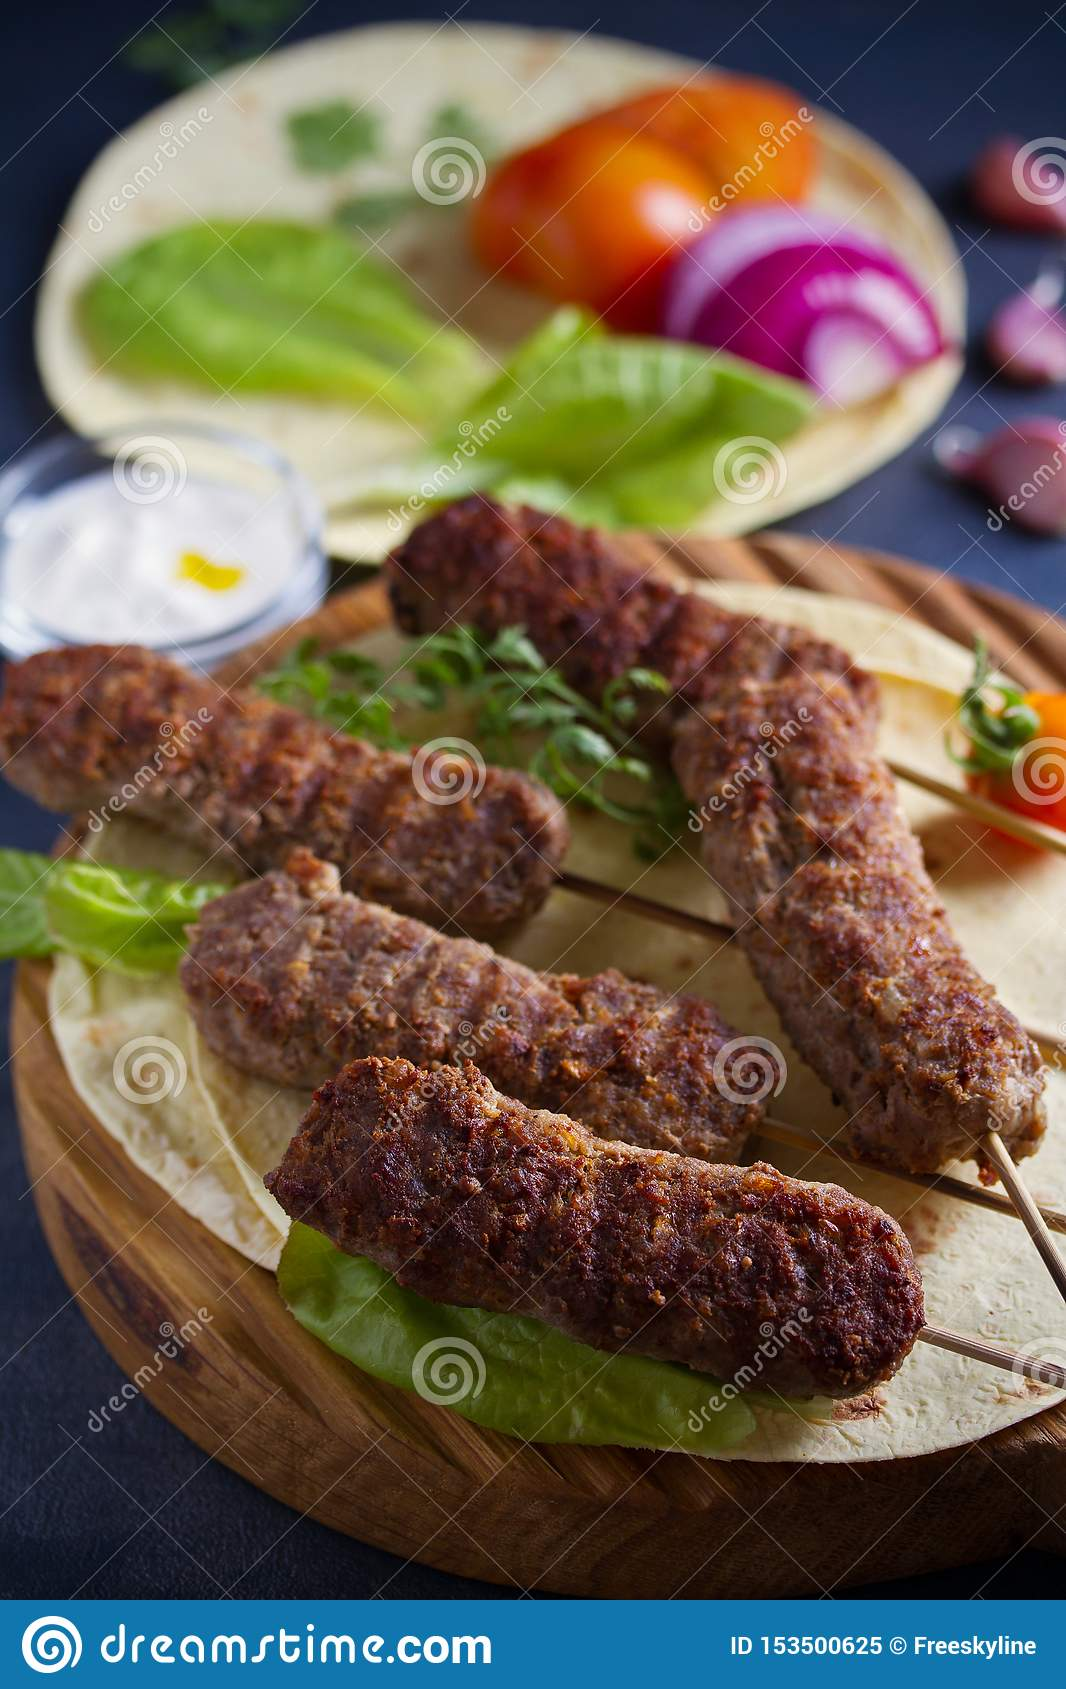 Lamb kebabs on serving board with pita bread, vegetables and yogurt sauce.